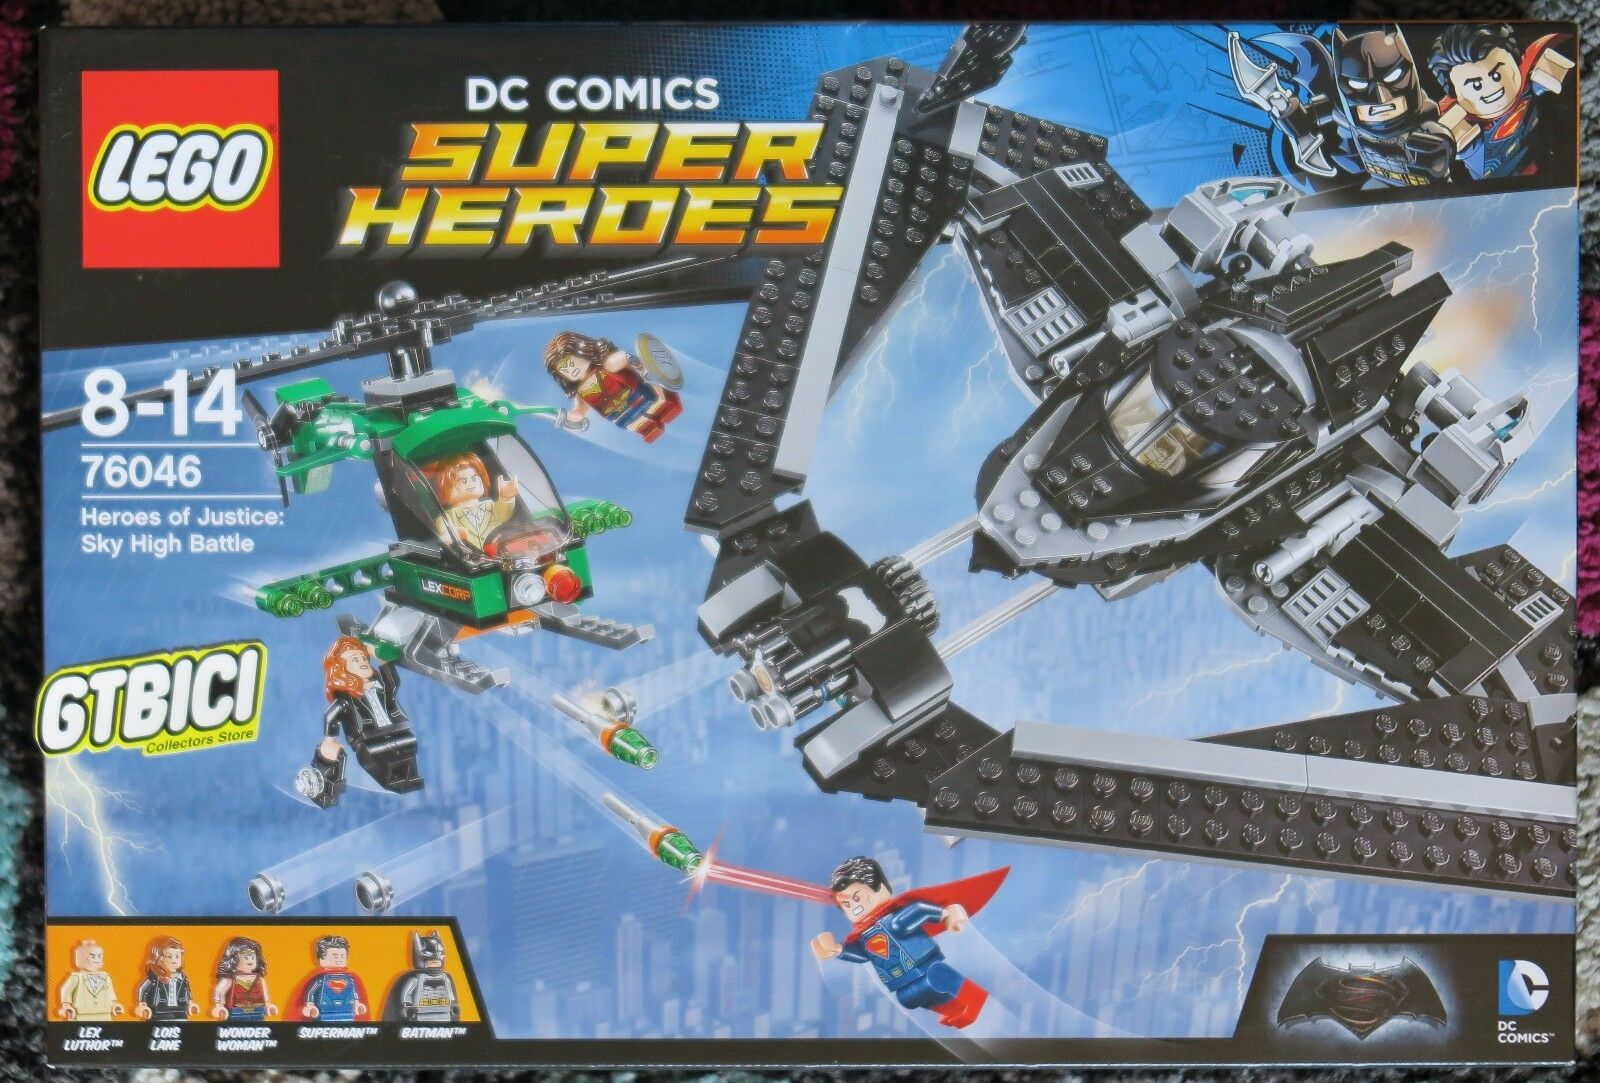 LEGO SUPER SUPER SUPER HEROES DC HEROES OF JUSTICE: SKY HIGH BATTLE  Ref 76046 NUEVO 2d8615